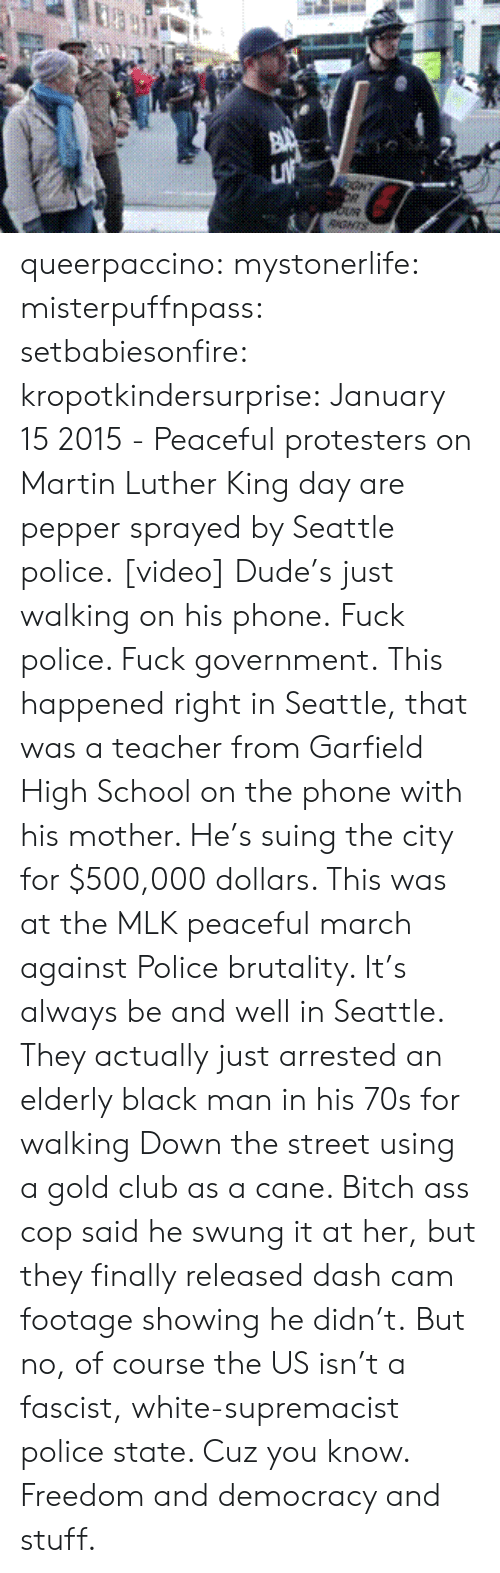 mlk: GHT  RGNTS queerpaccino: mystonerlife:  misterpuffnpass:  setbabiesonfire:  kropotkindersurprise: January 152015 - Peaceful protesters on Martin Luther King day are pepper sprayed by Seattle police.[video] Dude's just walking on his phone.  Fuck police. Fuck government.  This happened right in Seattle, that was a teacher from Garfield High School on the phone with his mother. He's suing the city for $500,000 dollars. This was at the MLK peaceful march against Police brutality. It's always be and well in Seattle. They actually just arrested an elderly black man in his 70s for walking Down the street using a gold club as a cane. Bitch ass cop said he swung it at her, but they finally released dash cam footage showing he didn't.  But no, of course the US isn't a fascist, white-supremacist police state. Cuz you know. Freedom and democracy and stuff.